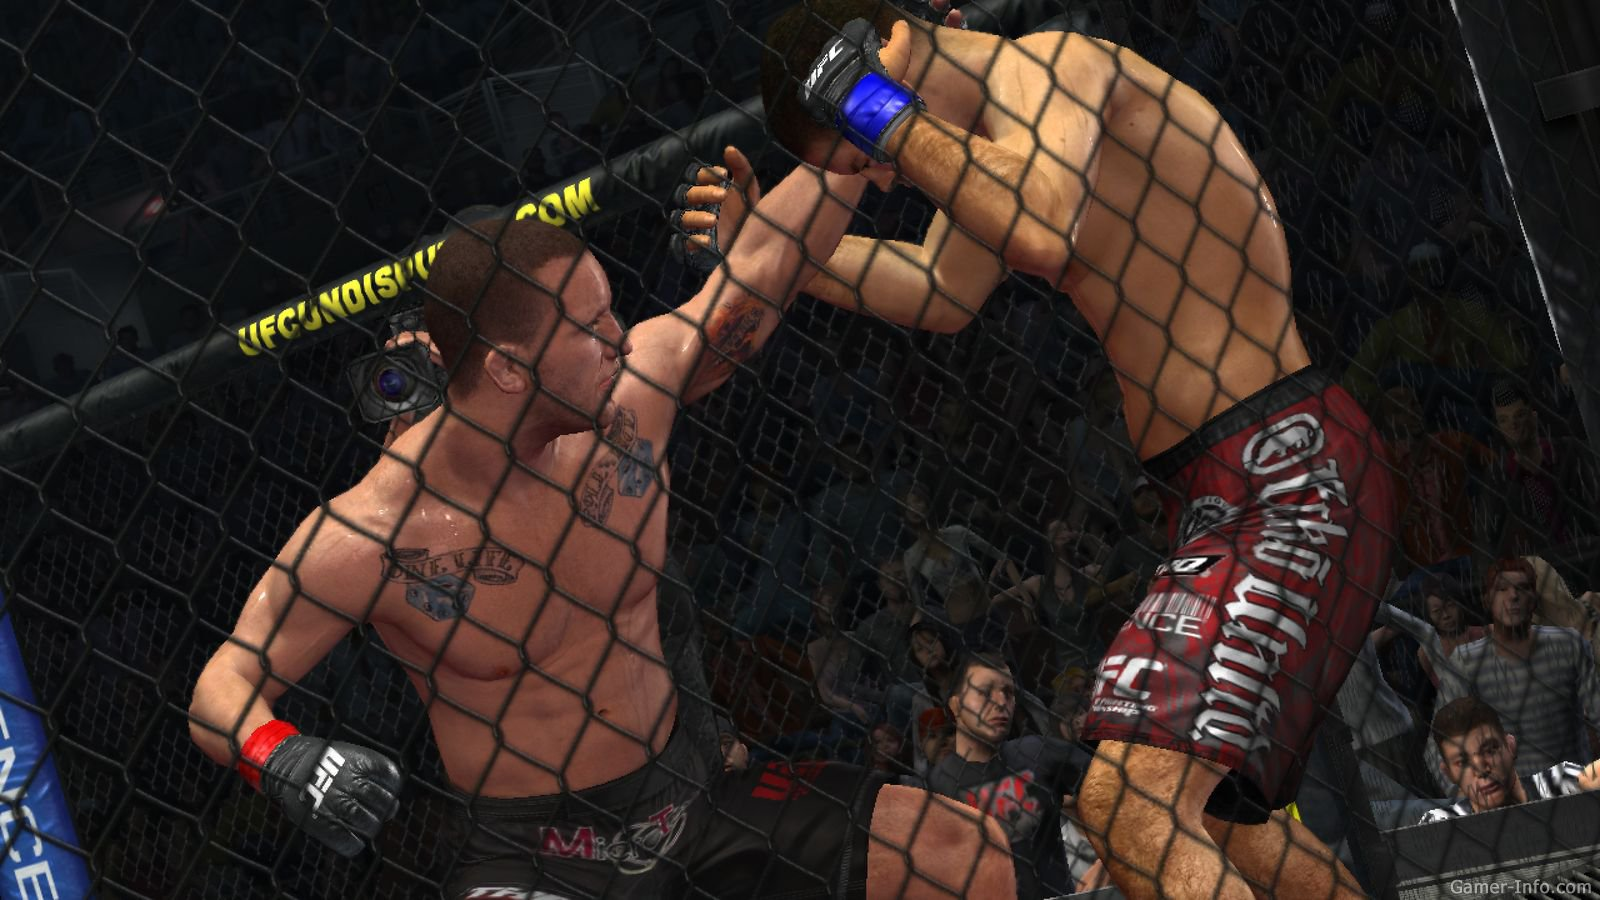 ufc undisputed 2010 psp free download